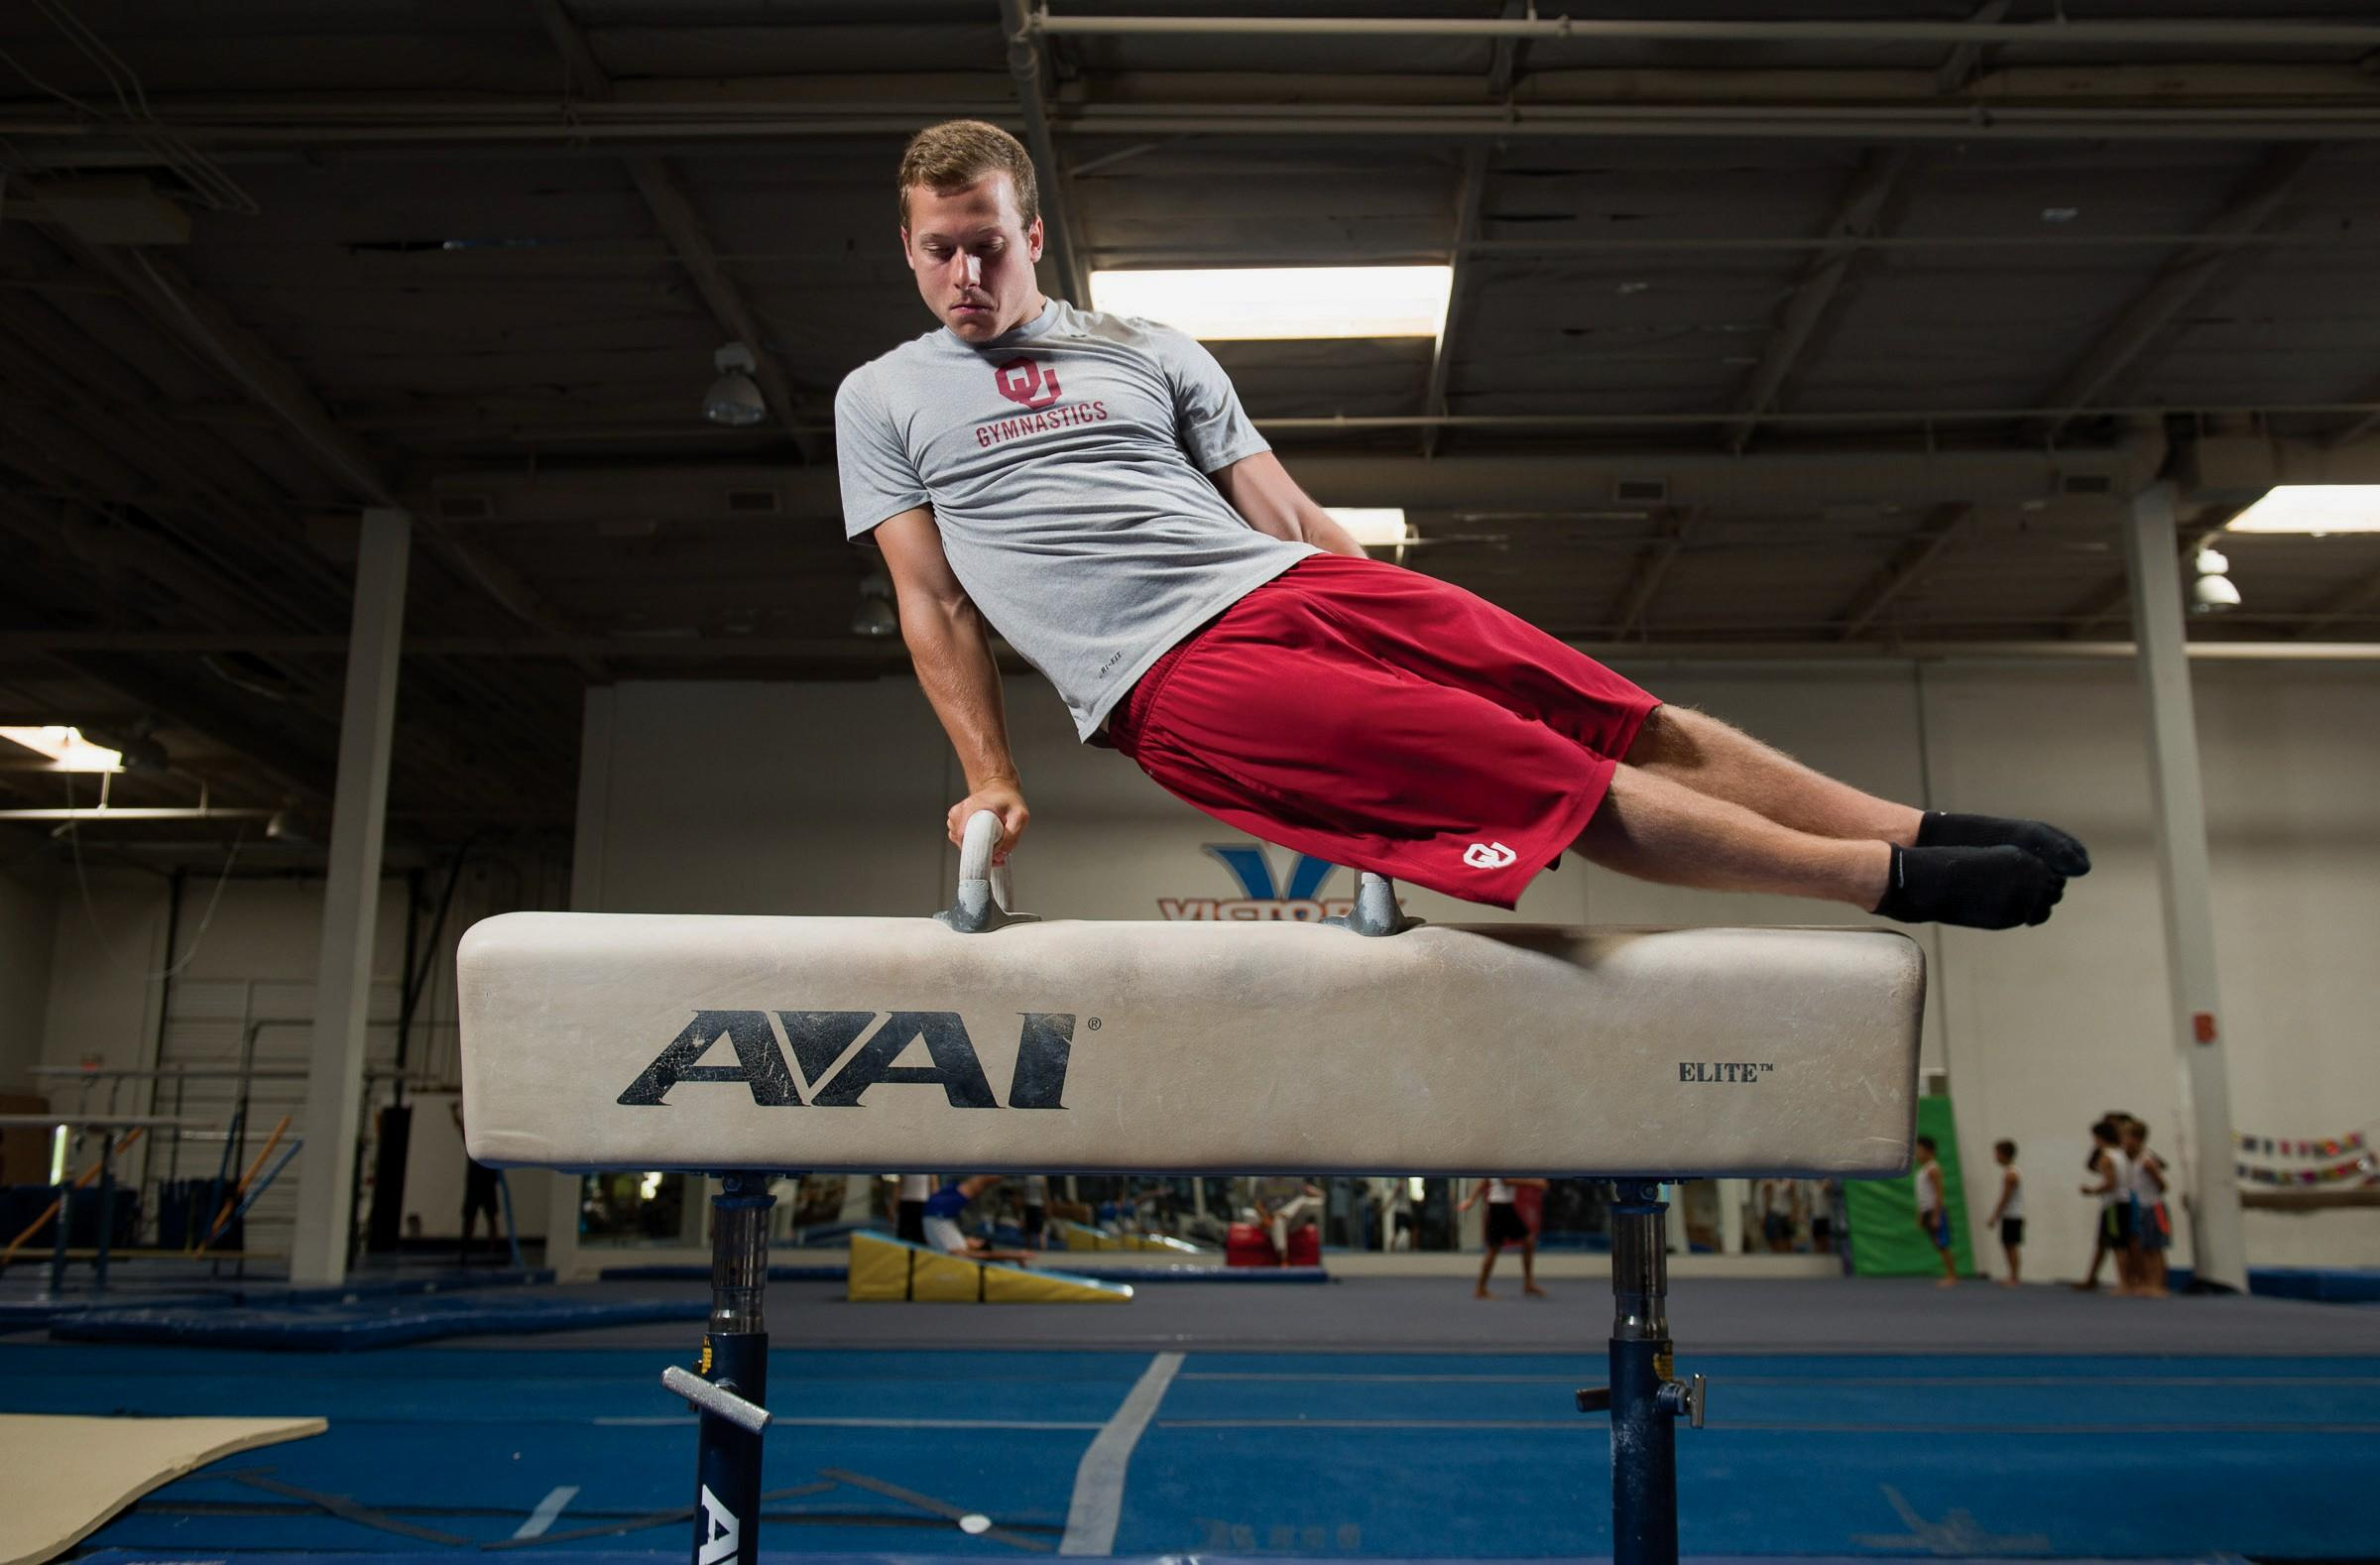 HORSING AROUND—Alec Robin does a short routine on the pommel horse at Victory Gymnastics Academy in Newbury Park on Tuesday. Robin will study dentistry at the University of Pennsylvania.